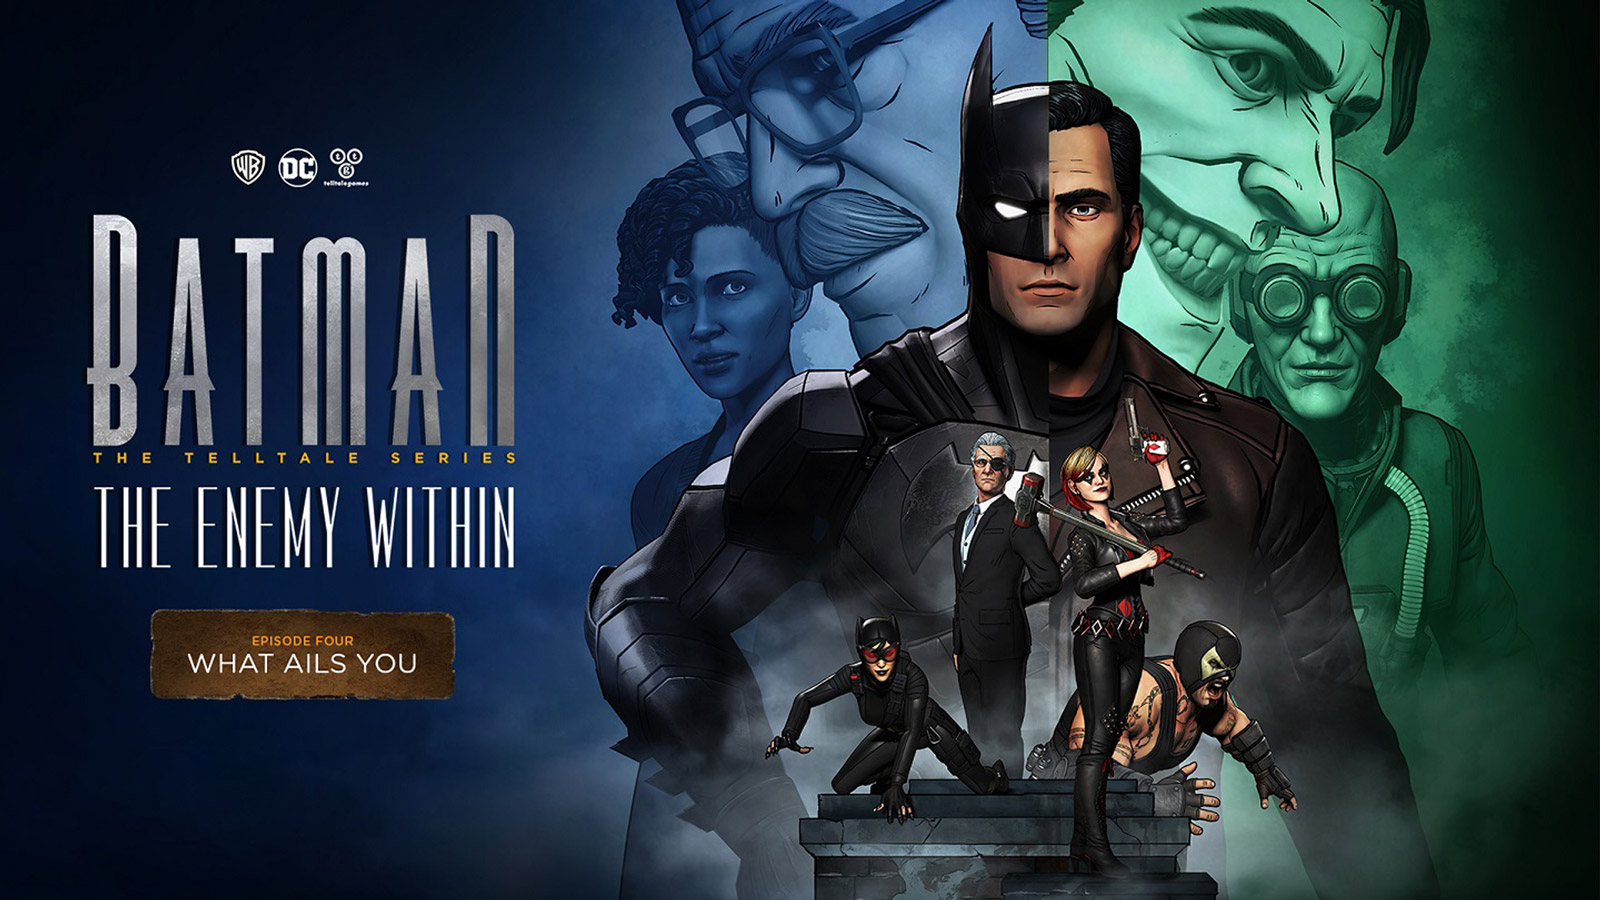 Free Batman: The Enemy Within - The Telltale Series Wallpaper in 1600x900